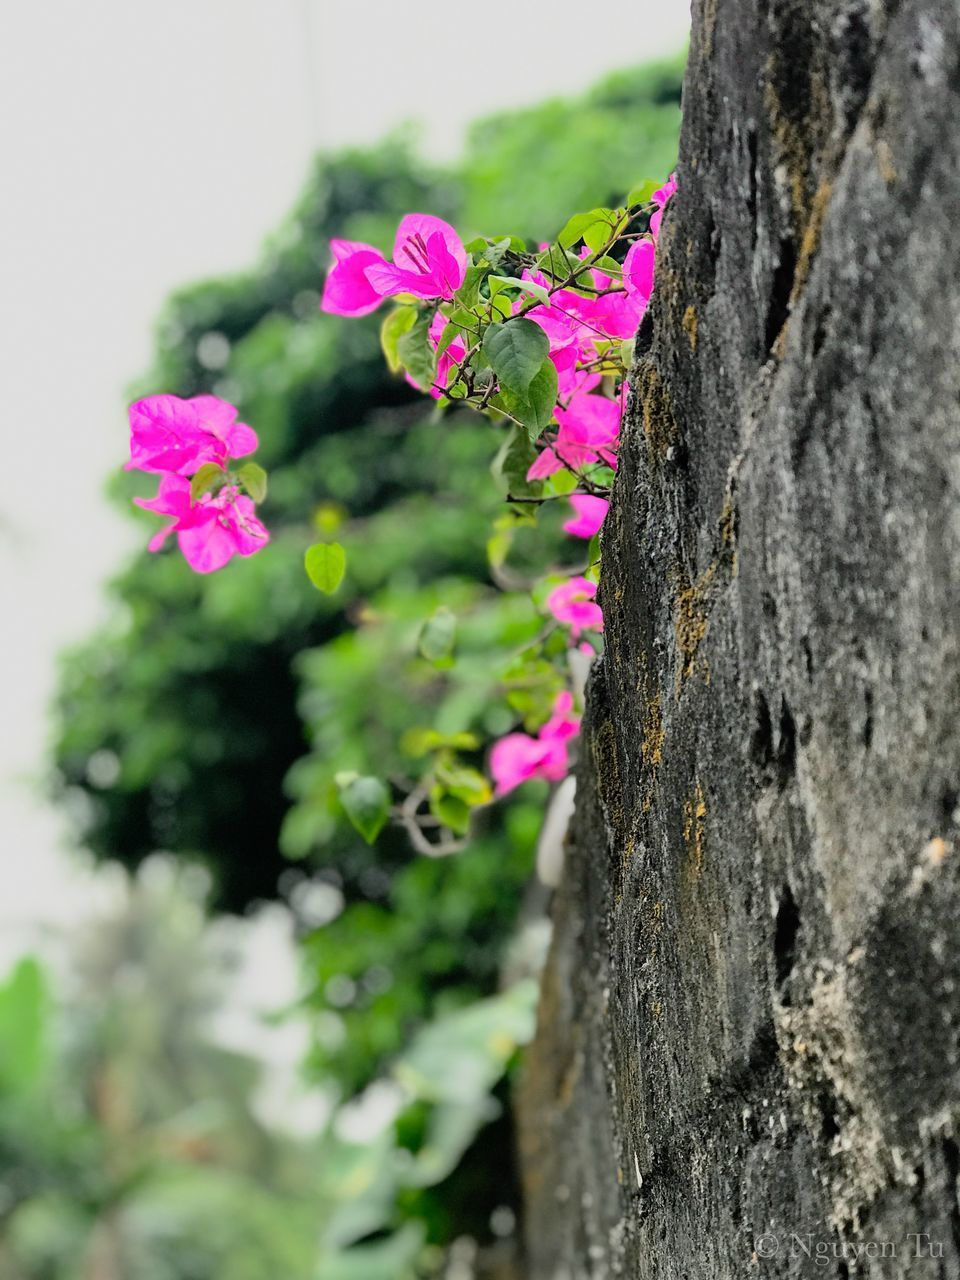 plant, pink color, flowering plant, flower, growth, tree trunk, trunk, close-up, beauty in nature, freshness, selective focus, vulnerability, nature, fragility, day, no people, tree, outdoors, focus on foreground, petal, flower head, bark, lichen